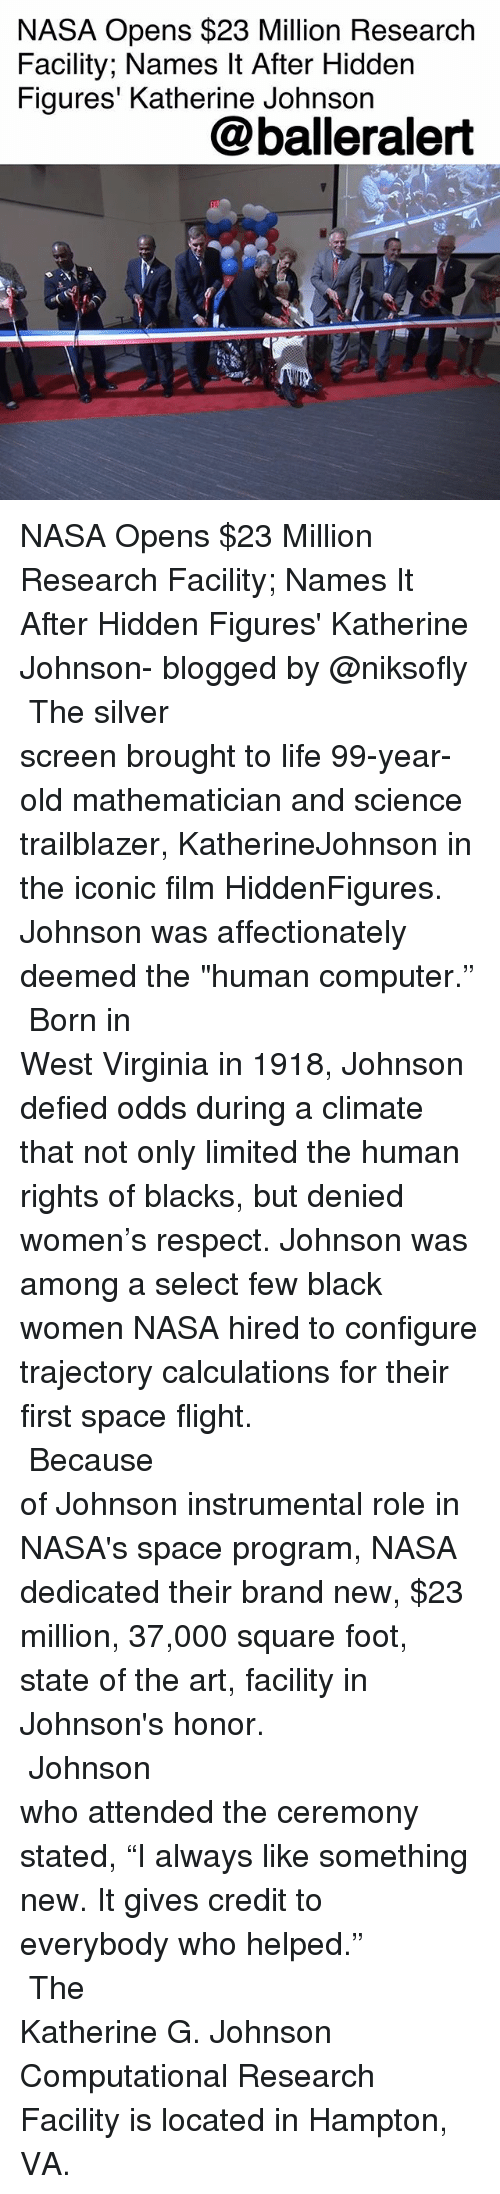 "johnsons: NASA Opens $23 Million Research  Facility; Names It After Hidden  Figures' Katherine Johnson  @balleralert NASA Opens $23 Million Research Facility; Names It After Hidden Figures' Katherine Johnson- blogged by @niksofly ⠀⠀⠀⠀⠀⠀⠀⠀⠀⠀⠀⠀⠀⠀⠀⠀⠀⠀⠀⠀⠀⠀⠀⠀⠀⠀⠀⠀⠀⠀⠀⠀⠀ The silver screen brought to life 99-year-old mathematician and science trailblazer, KatherineJohnson in the iconic film HiddenFigures. Johnson was affectionately deemed the ""human computer."" ⠀⠀⠀⠀⠀⠀⠀⠀⠀⠀⠀⠀⠀⠀⠀⠀⠀⠀⠀⠀⠀⠀⠀⠀⠀⠀⠀⠀⠀⠀⠀⠀⠀ Born in West Virginia in 1918, Johnson defied odds during a climate that not only limited the human rights of blacks, but denied women's respect. Johnson was among a select few black women NASA hired to configure trajectory calculations for their first space flight. ⠀⠀⠀⠀⠀⠀⠀⠀⠀⠀⠀⠀⠀⠀⠀⠀⠀⠀⠀⠀⠀⠀⠀⠀⠀⠀⠀⠀⠀⠀⠀⠀⠀ Because of Johnson instrumental role in NASA's space program, NASA dedicated their brand new, $23 million, 37,000 square foot, state of the art, facility in Johnson's honor. ⠀⠀⠀⠀⠀⠀⠀⠀⠀⠀⠀⠀⠀⠀⠀⠀⠀⠀⠀⠀⠀⠀⠀⠀⠀⠀⠀⠀⠀⠀⠀⠀⠀ Johnson who attended the ceremony stated, ""I always like something new. It gives credit to everybody who helped."" ⠀⠀⠀⠀⠀⠀⠀⠀⠀⠀⠀⠀⠀⠀⠀⠀⠀⠀⠀⠀⠀⠀⠀⠀⠀⠀⠀⠀⠀⠀⠀⠀⠀ The Katherine G. Johnson Computational Research Facility is located in Hampton, VA."